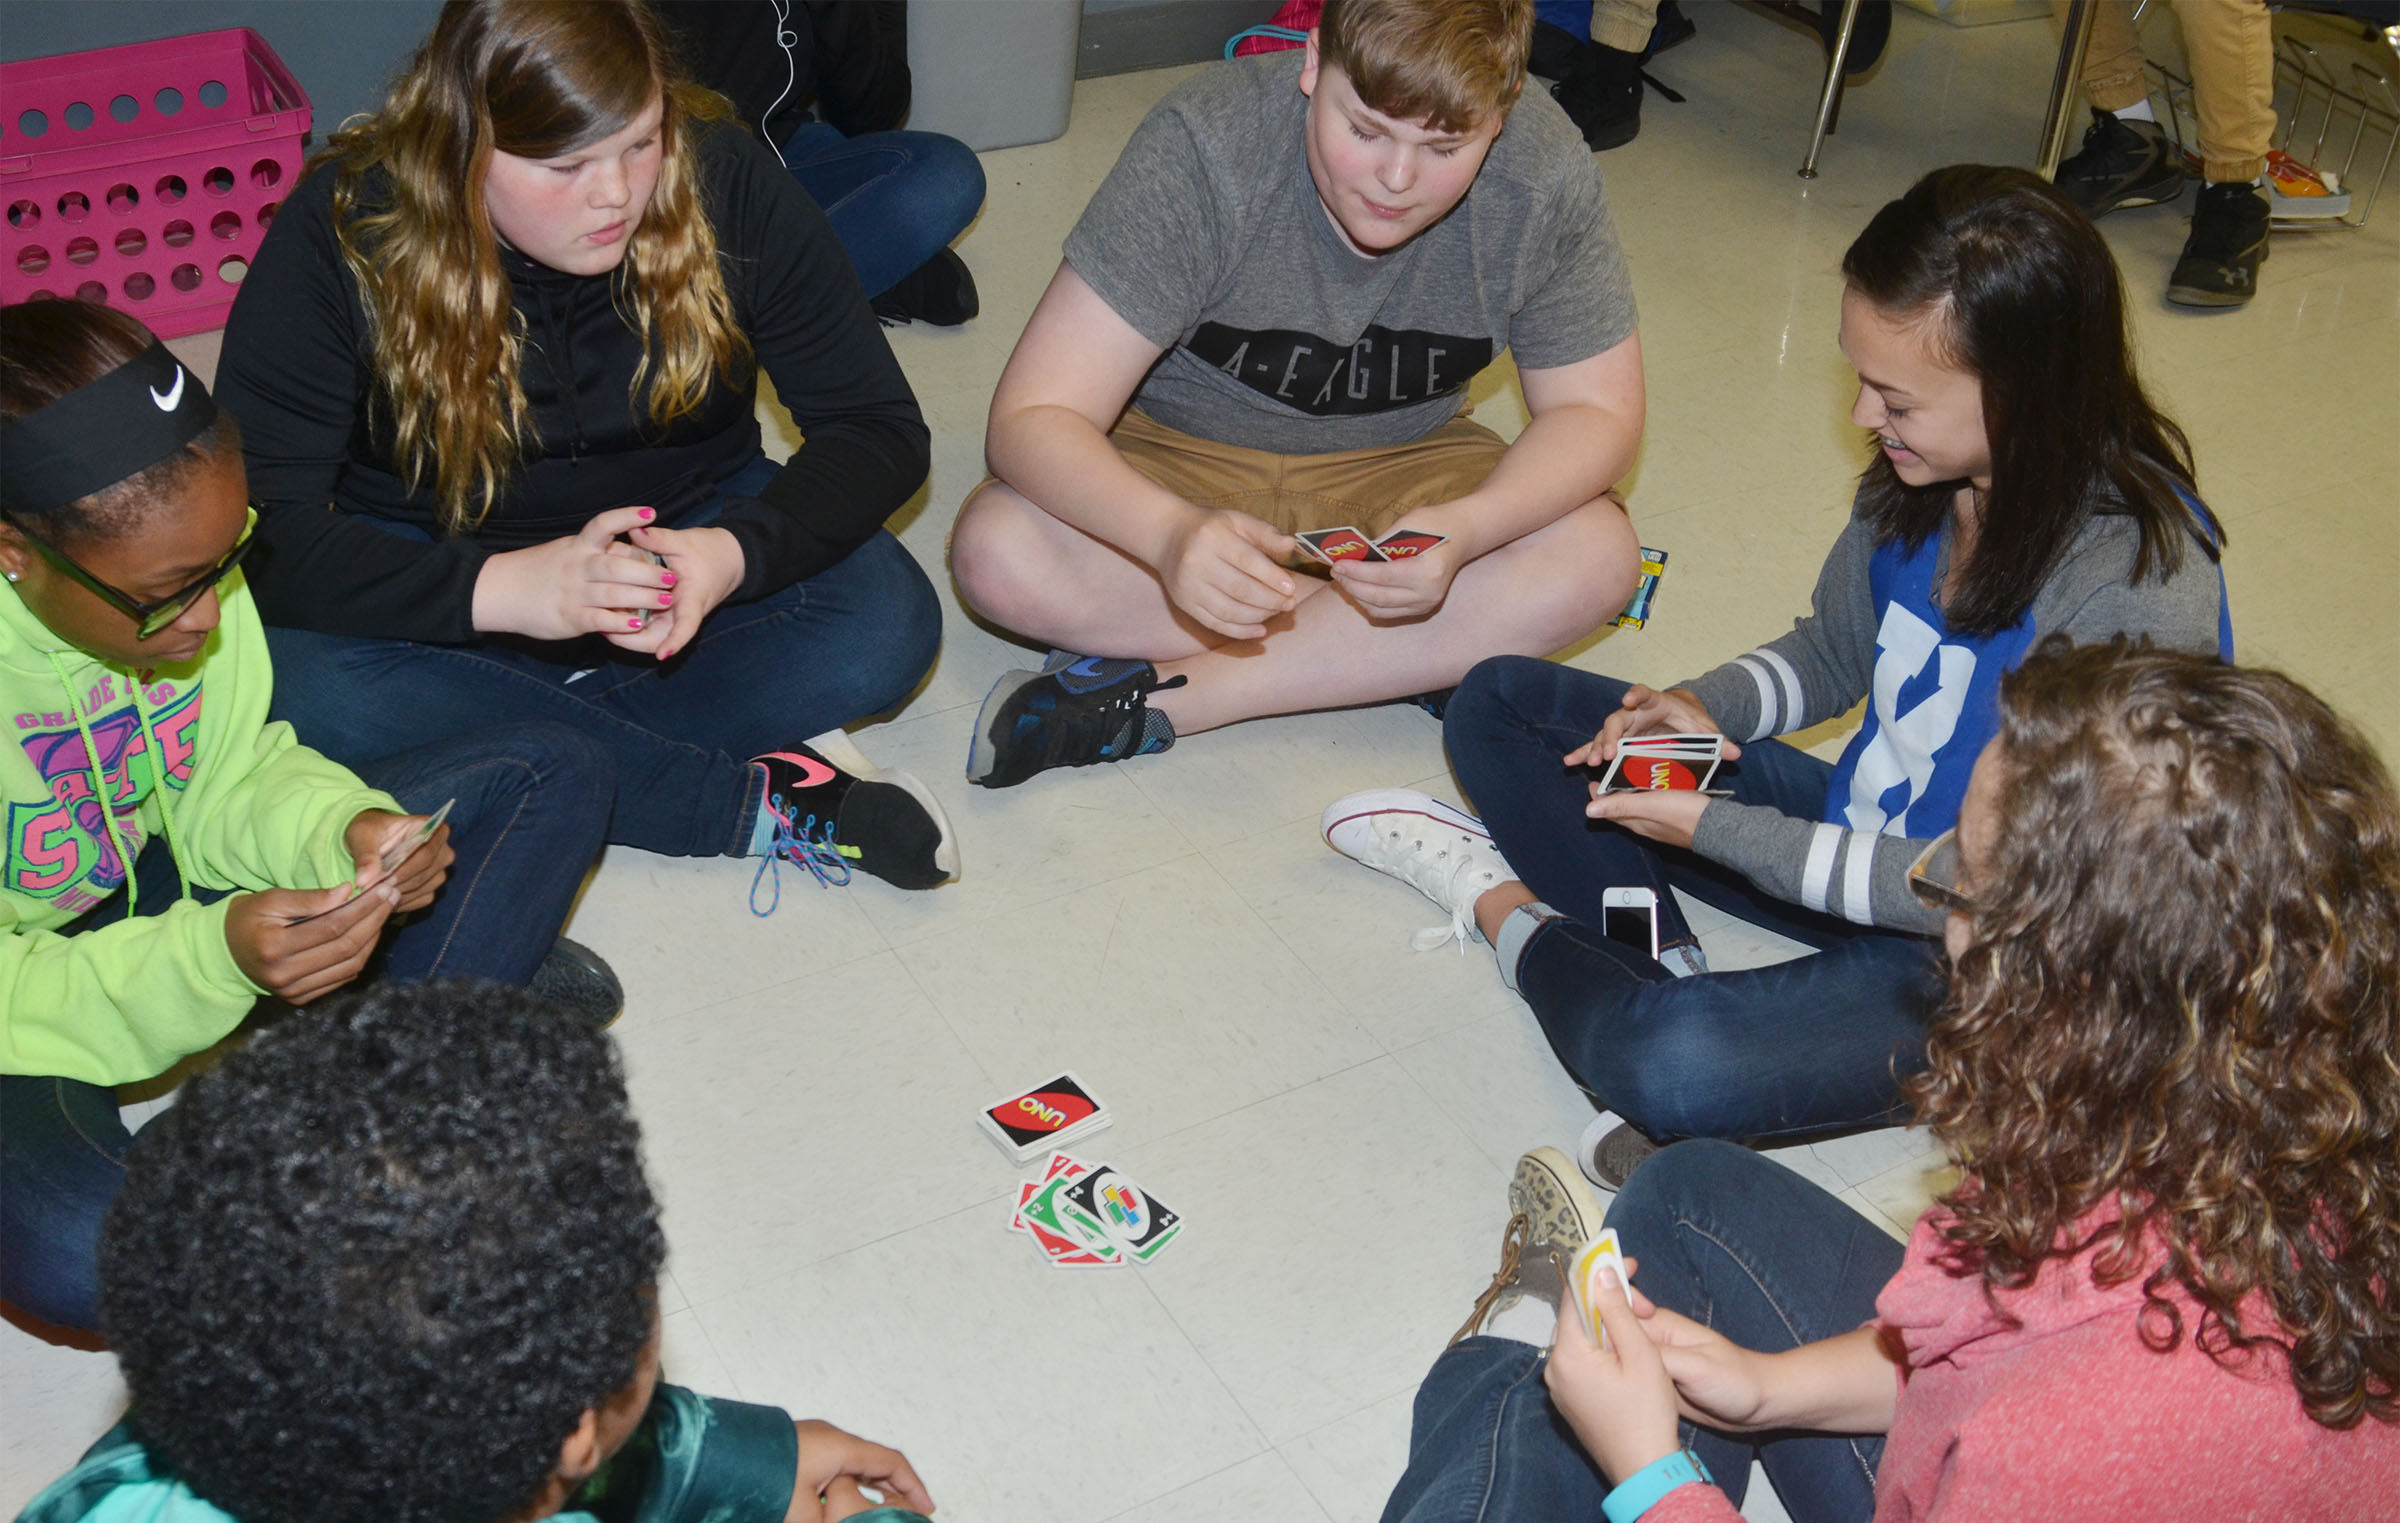 CMS seventh-graders, from left, Bri Gowdy, Sumara Berry, Blake Settle and Tayler Thompson play UNO with student teacher Jessica Hogue.